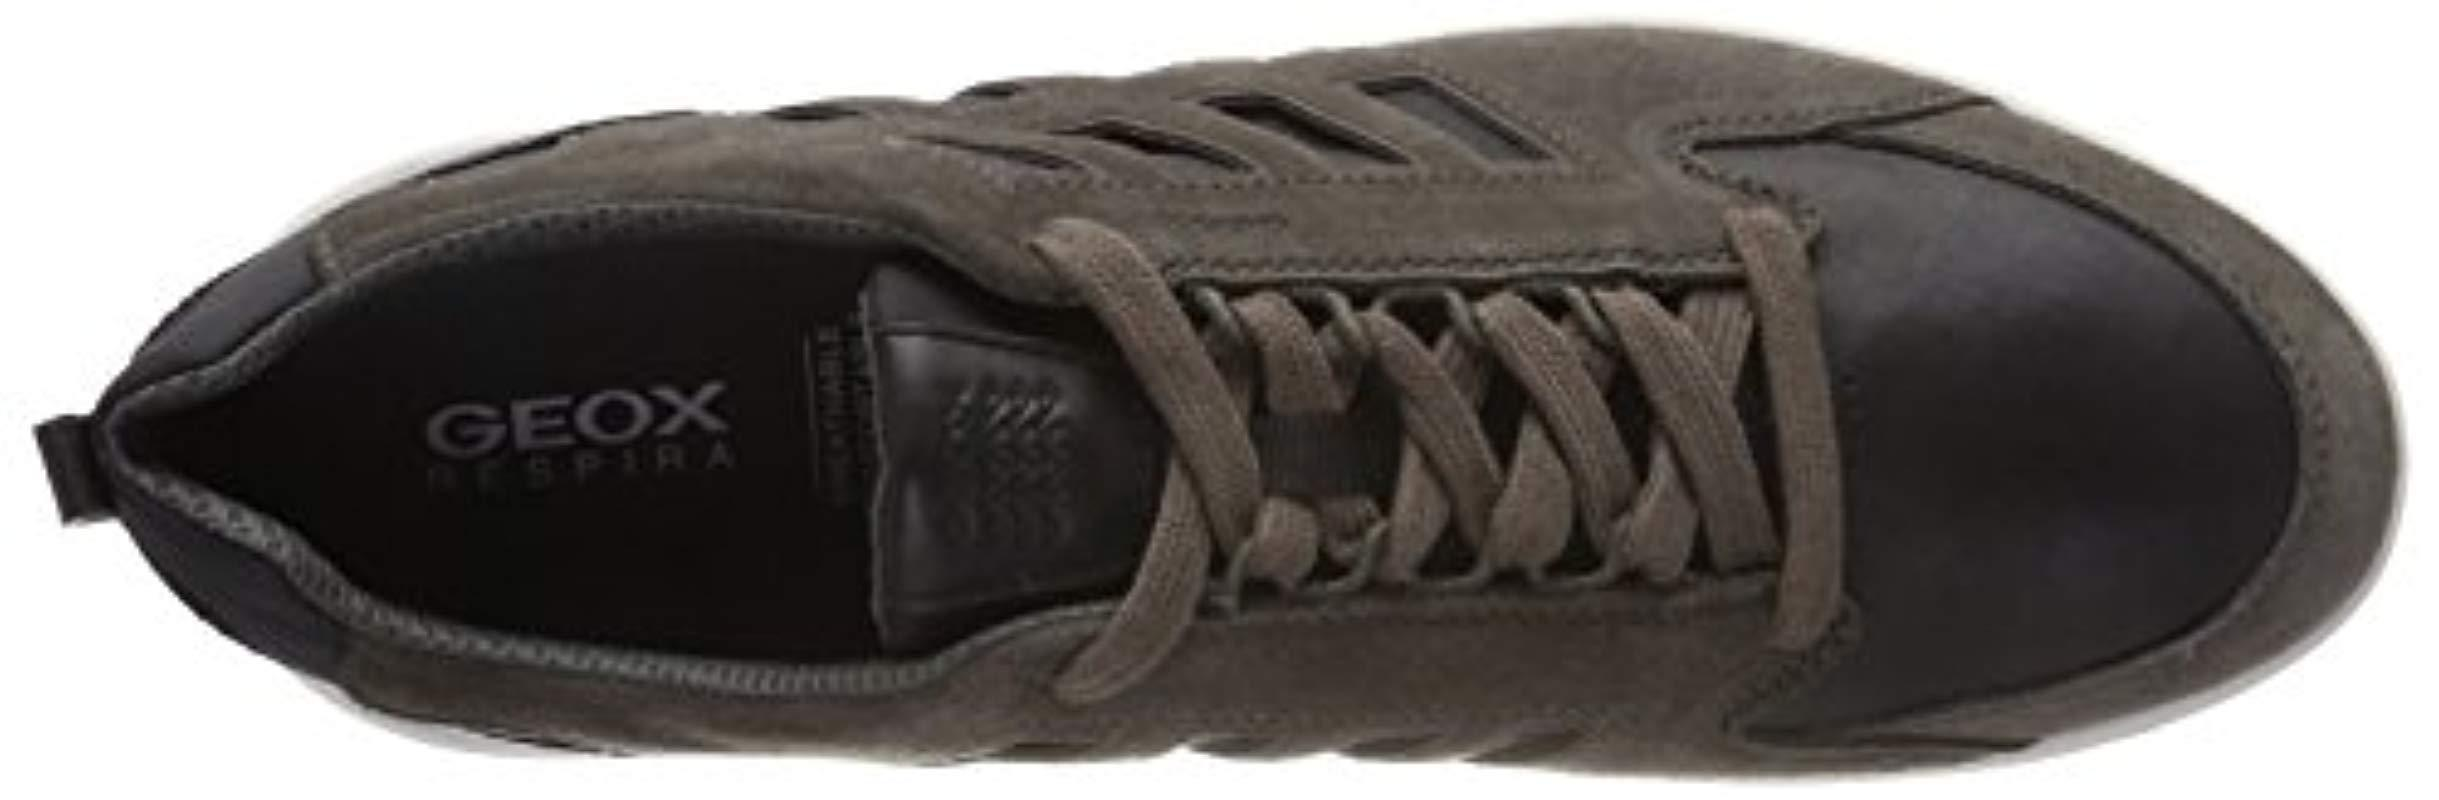 Geox  s U Mansel A Low-top Sneakers for Men - Lyst a4eed8ed7bf